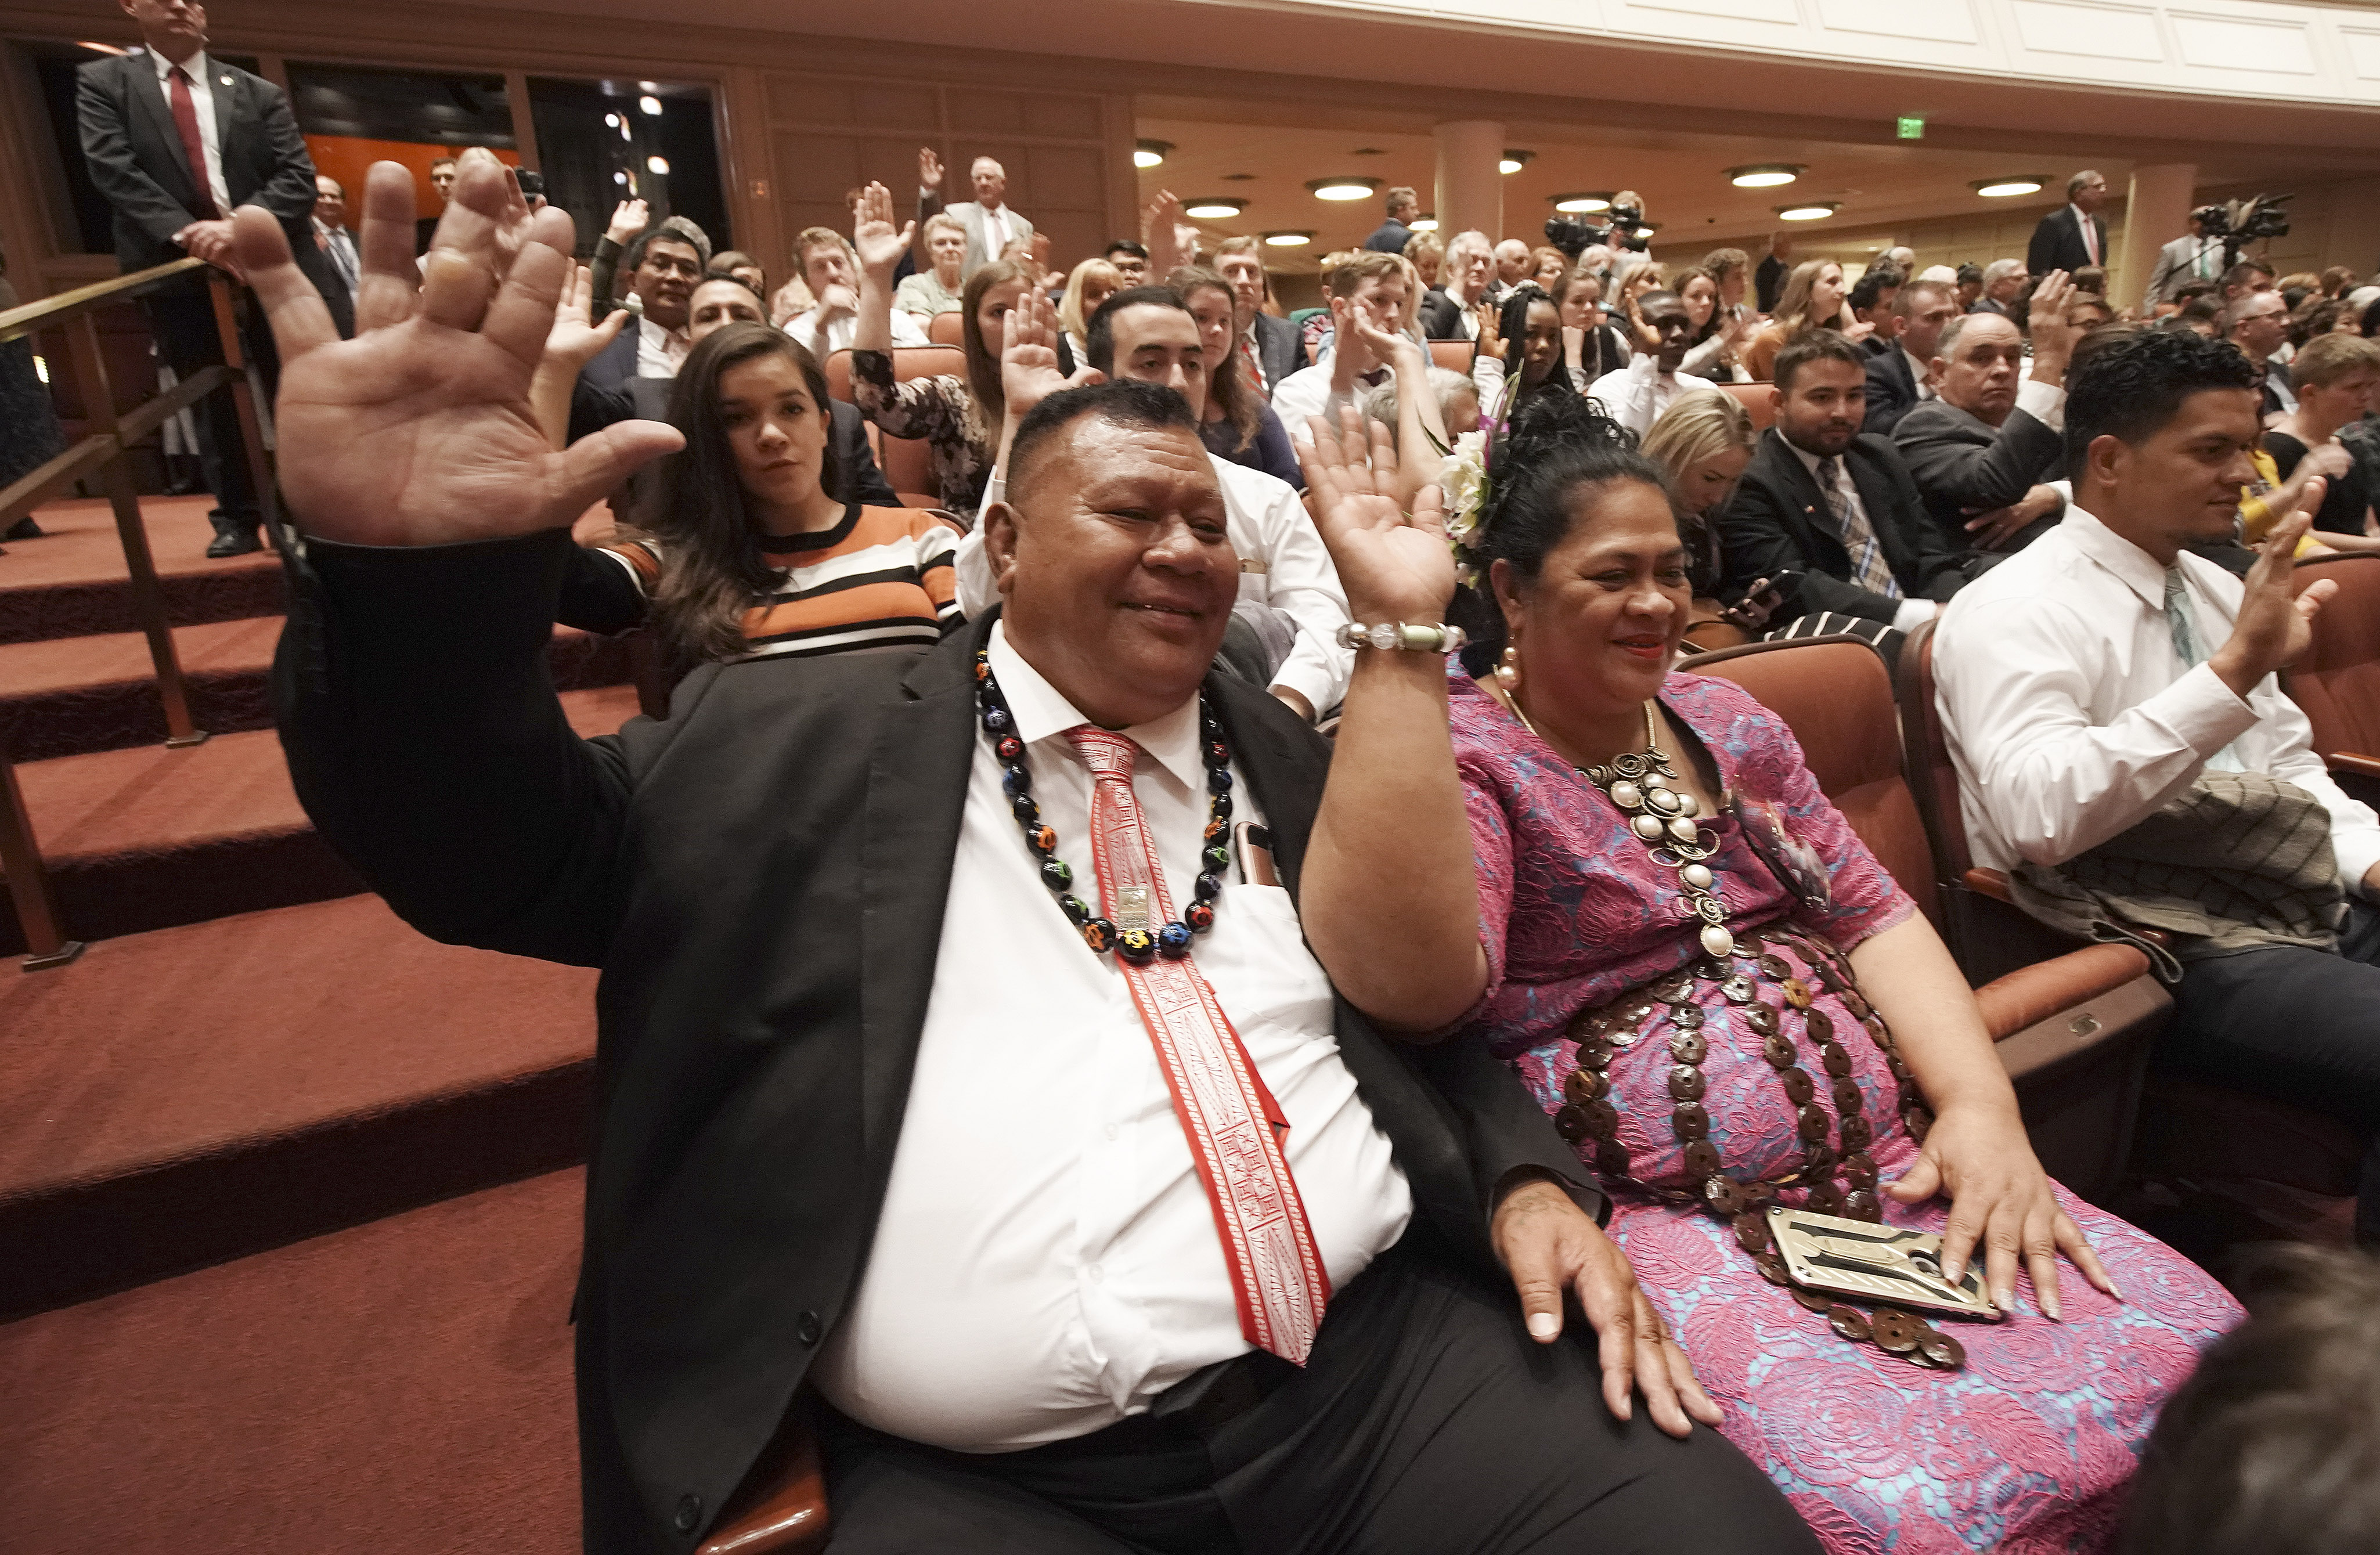 Lolani Leneti and Wendy Prescott sustain church leaders during the Saturday afternoon session of the 189th Semiannual General Conference of The Church of Jesus Christ of Latter-day Saints in the Conference Center in Salt Lake City on Saturday, Oct. 5, 2019.